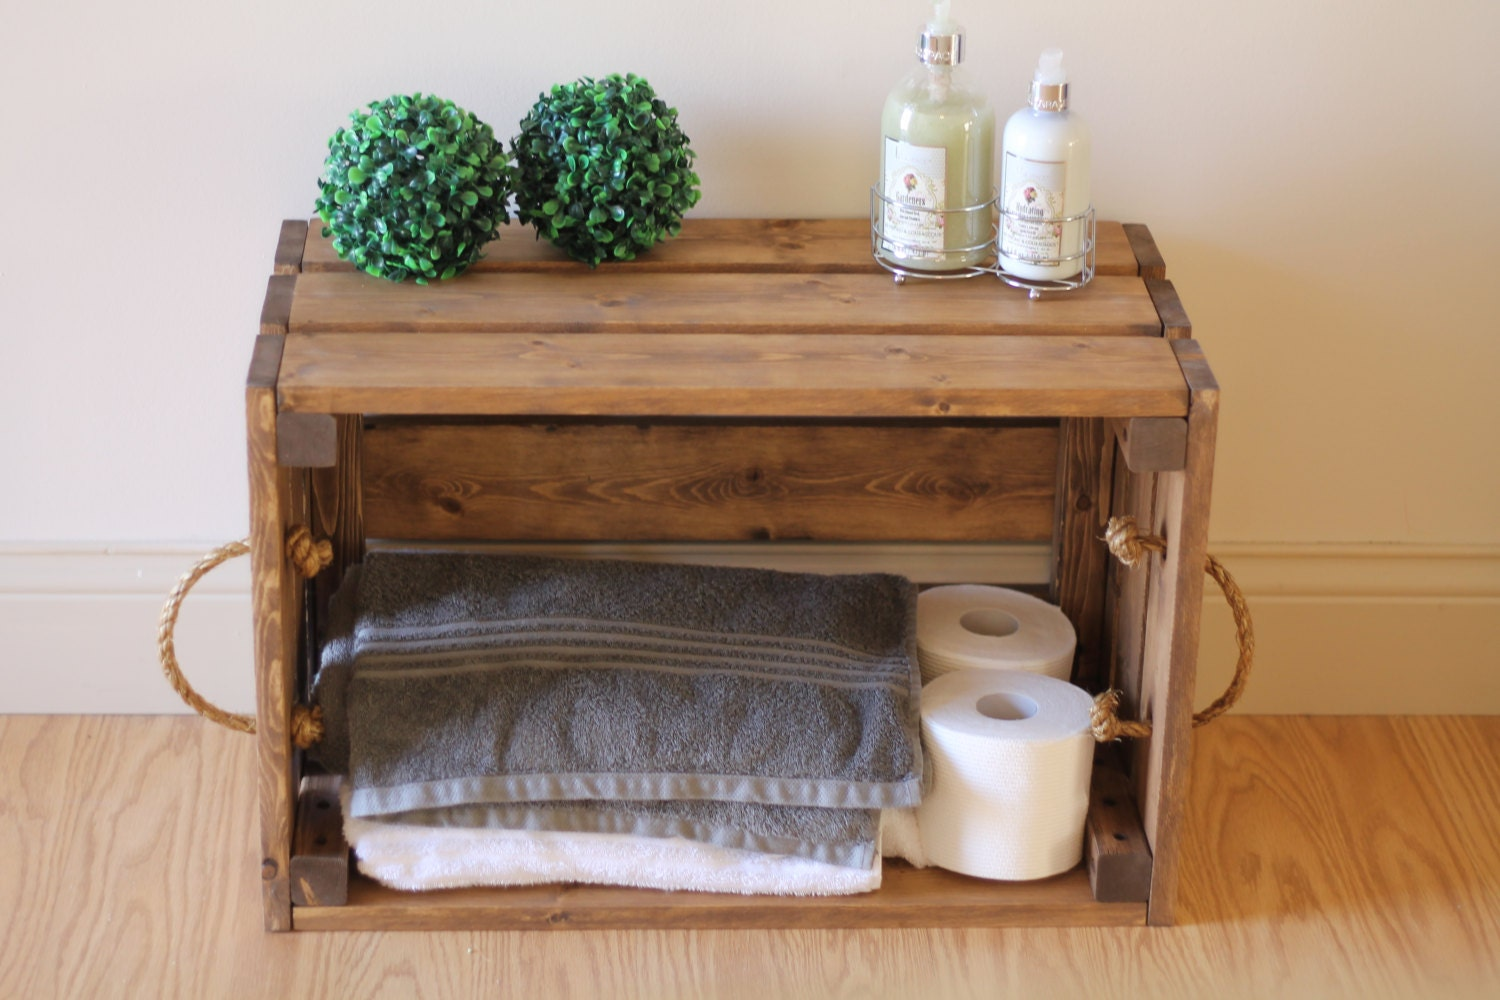 Rustic Wooden Crate Rustic Bathroom Storage Bathroom Shelf